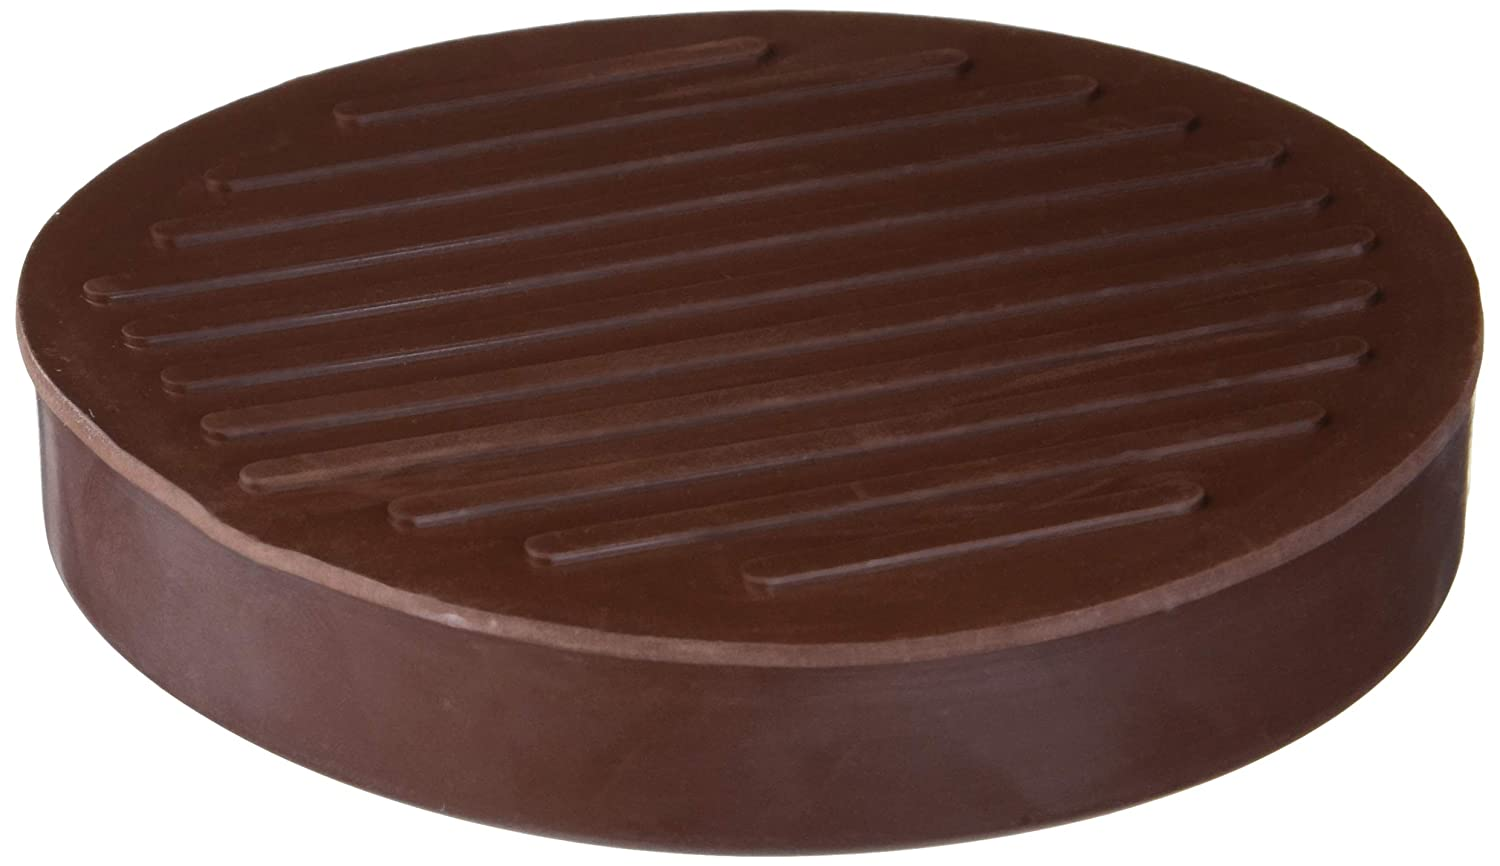 "Shepherd Hardware 9067 Round Rubber Furniture Cups (2 Pack), 3"", Brown"